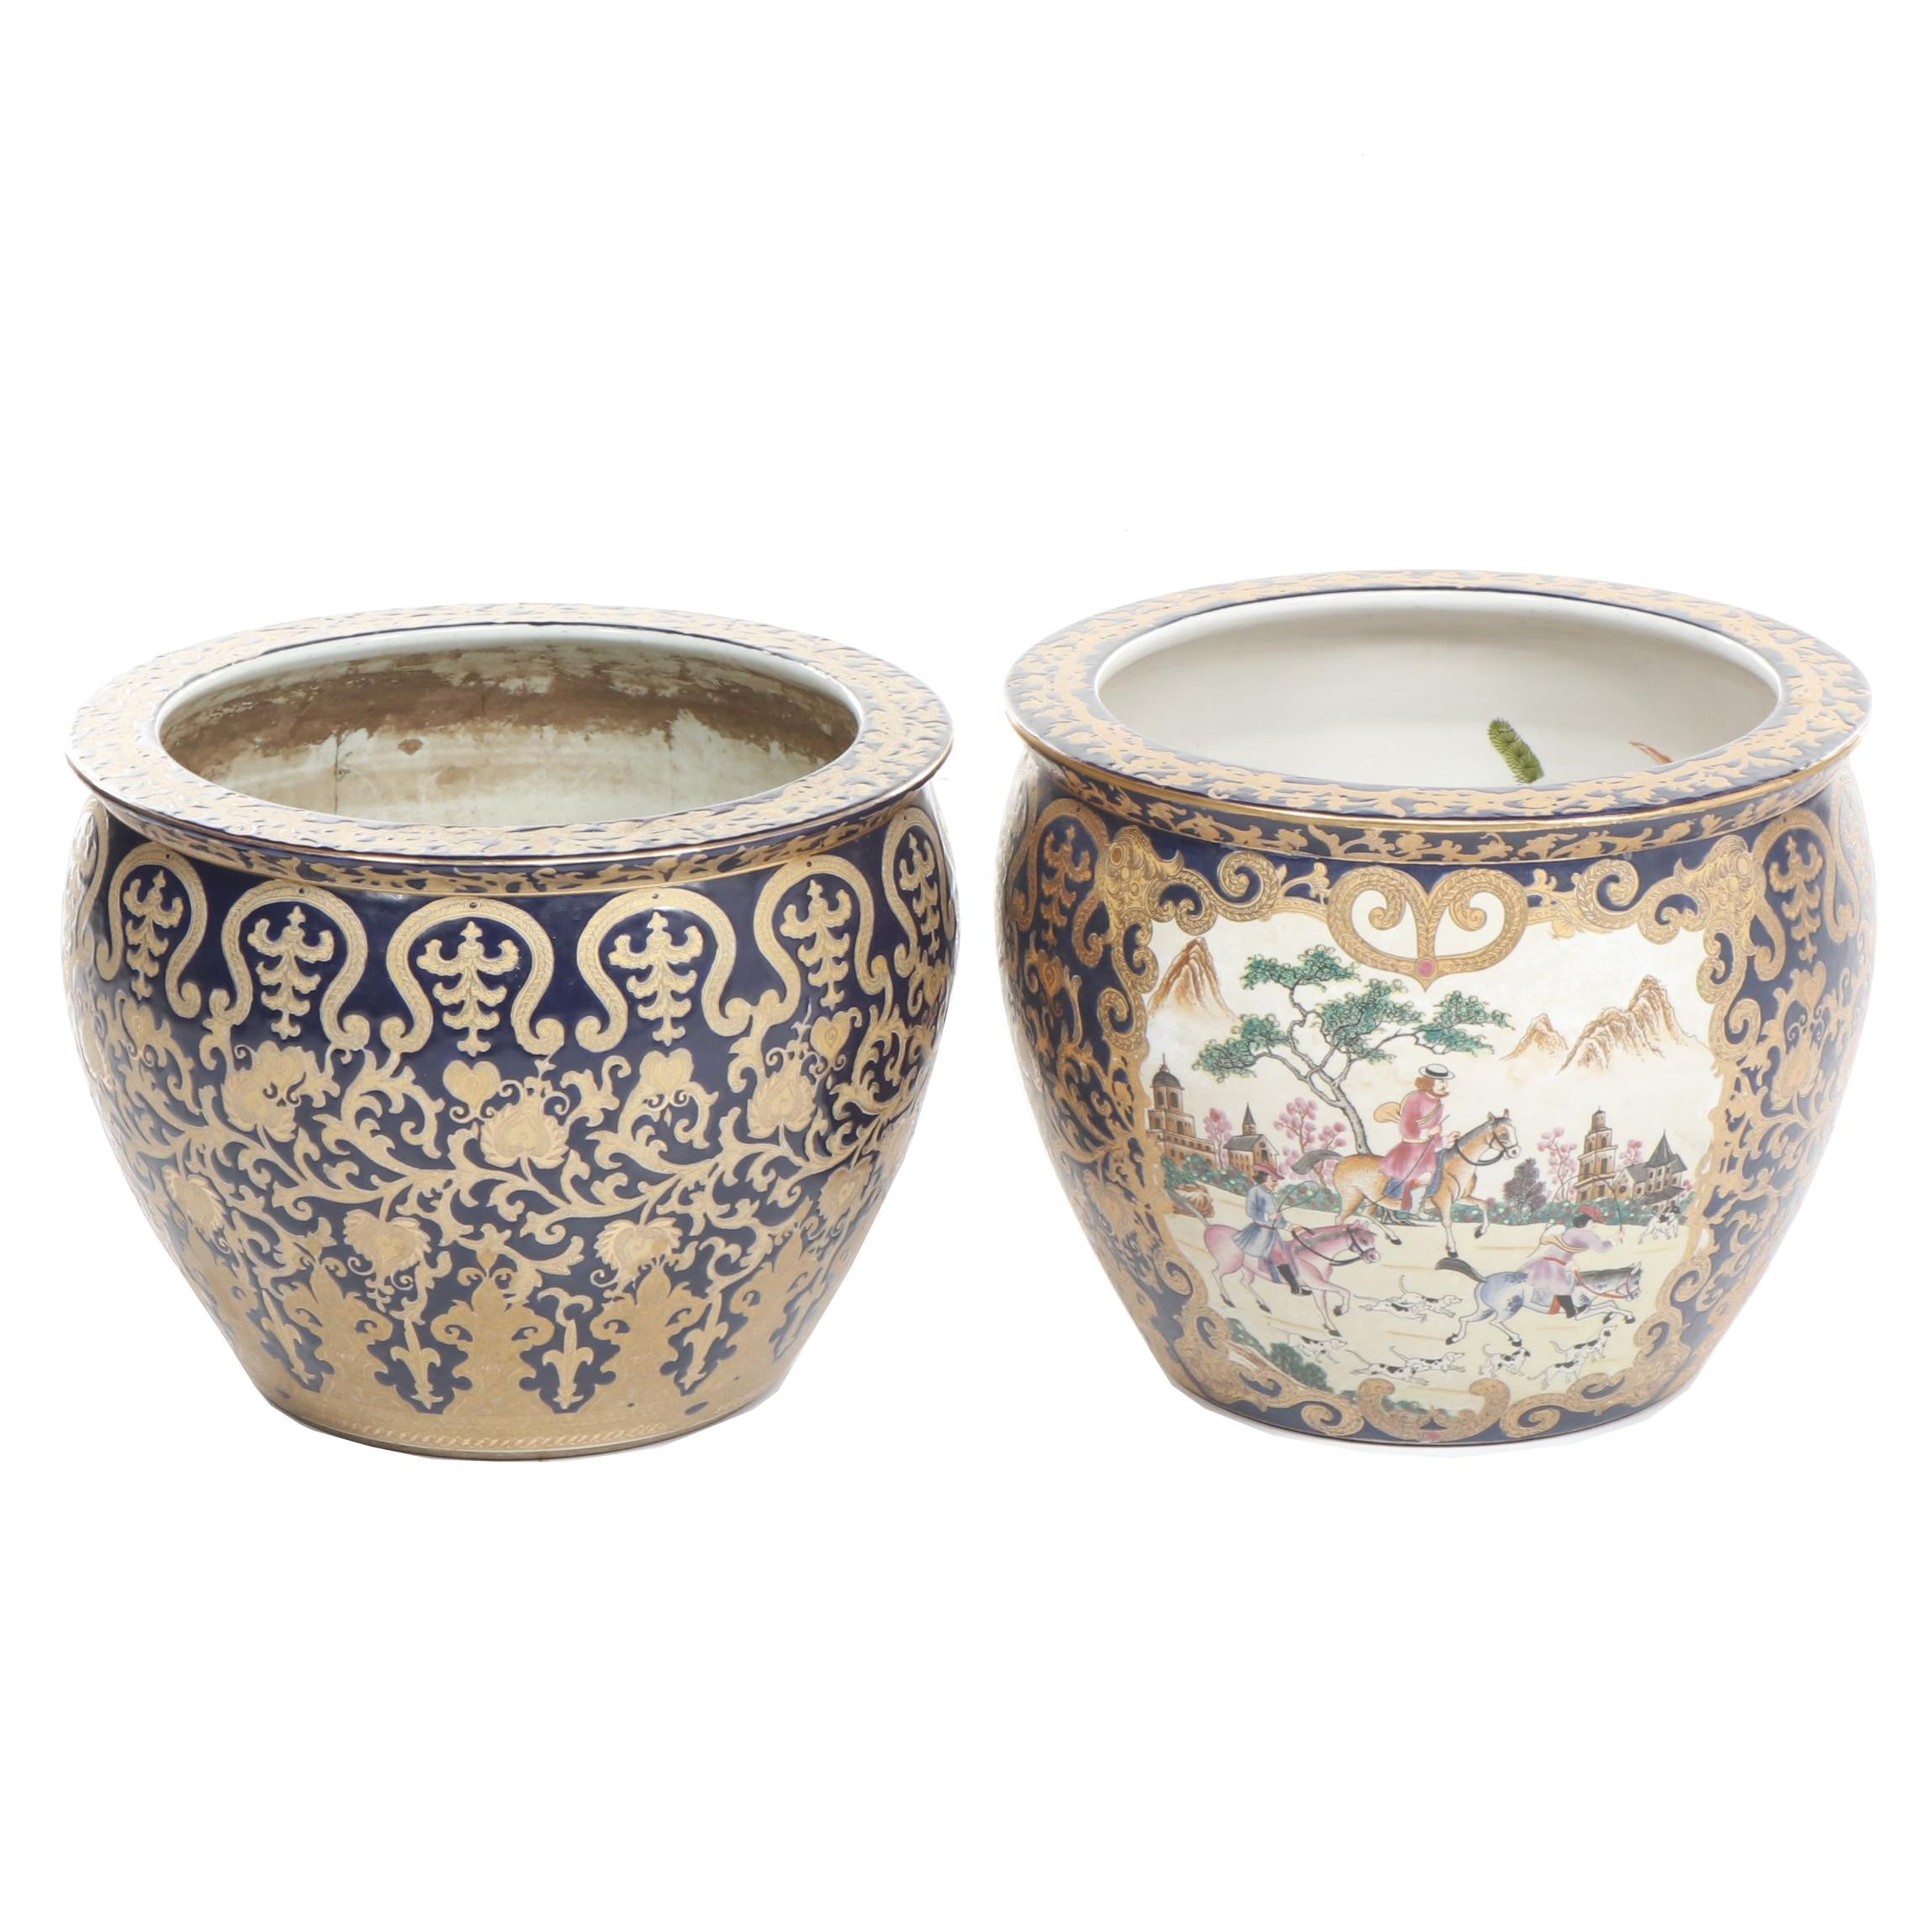 Large Hand-Painted Chinese Ceramic Planters